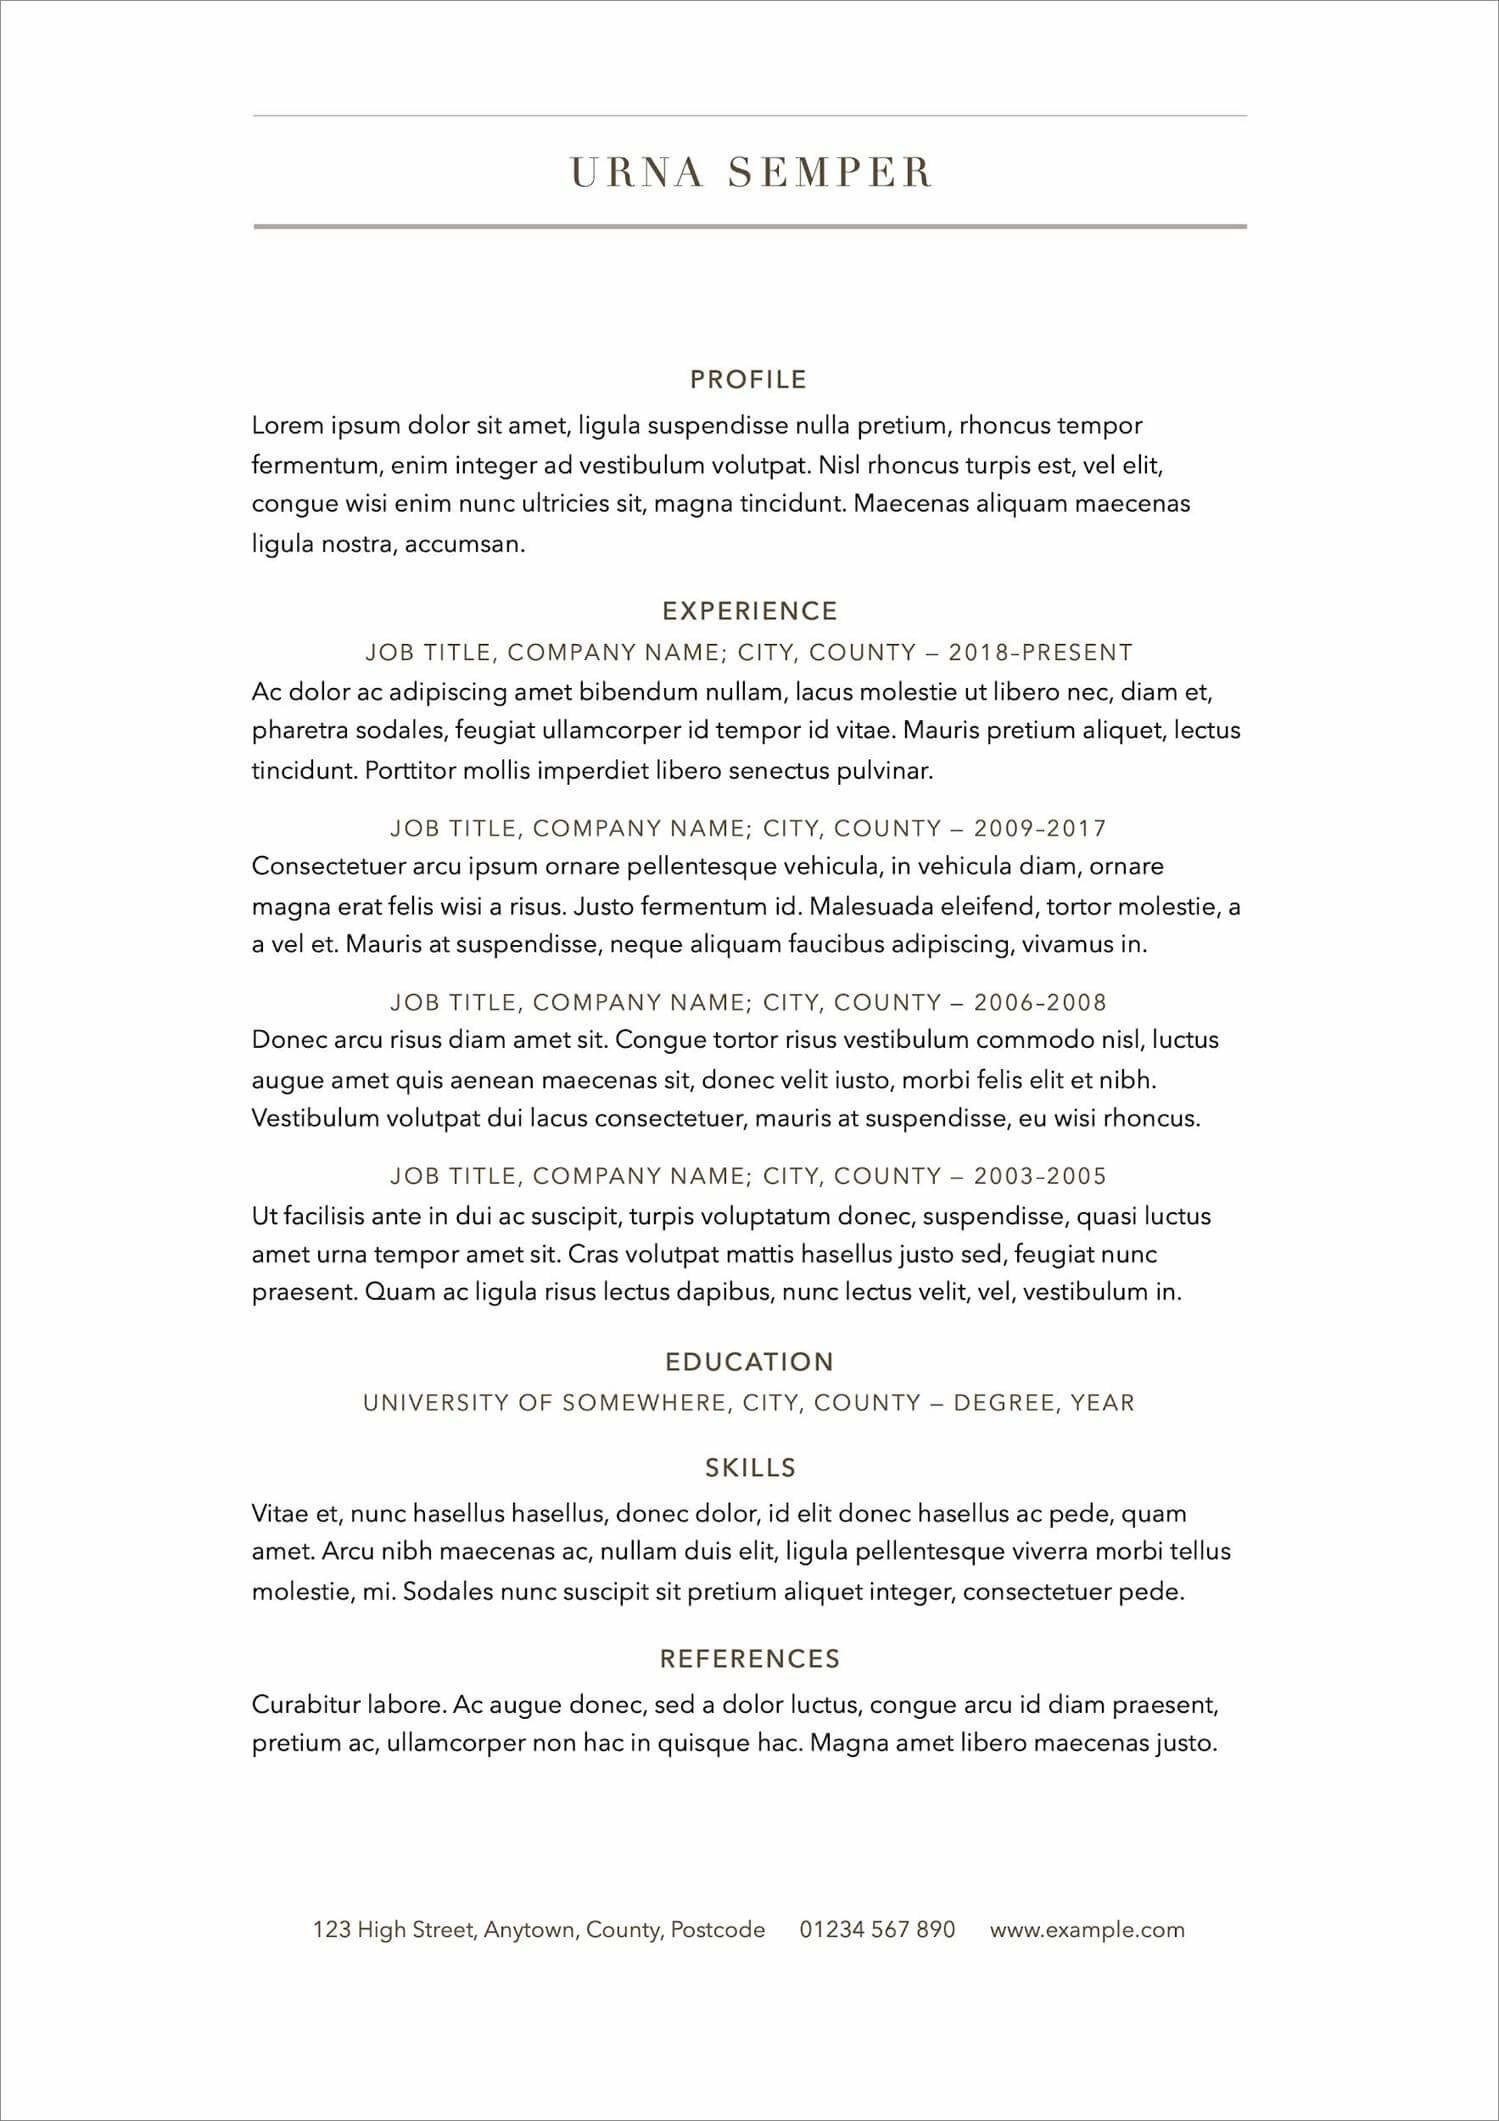 006 Surprising Free Printable Resume Template 2018 High Definition Full